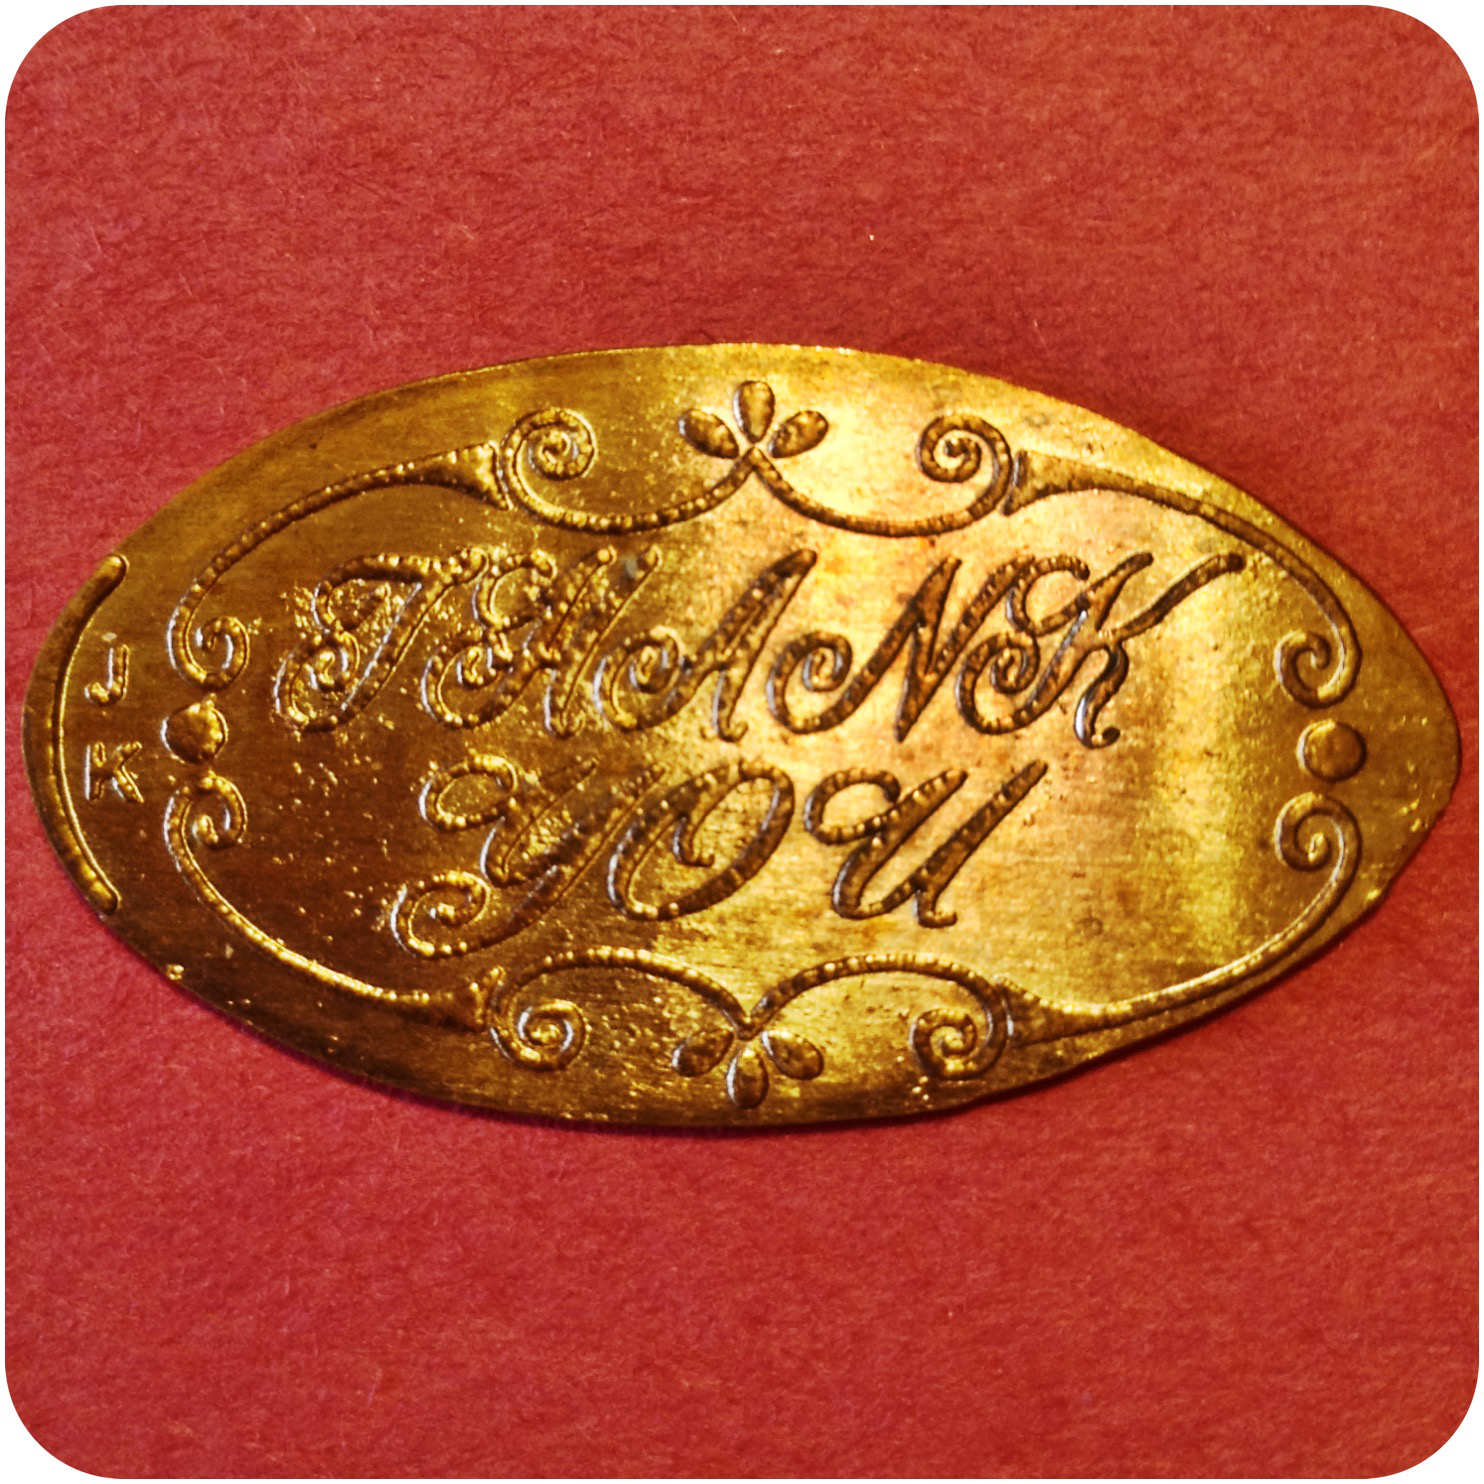 Thank You! with Scroll Border Salutation Copper Penny engraved by James Kilcoyne